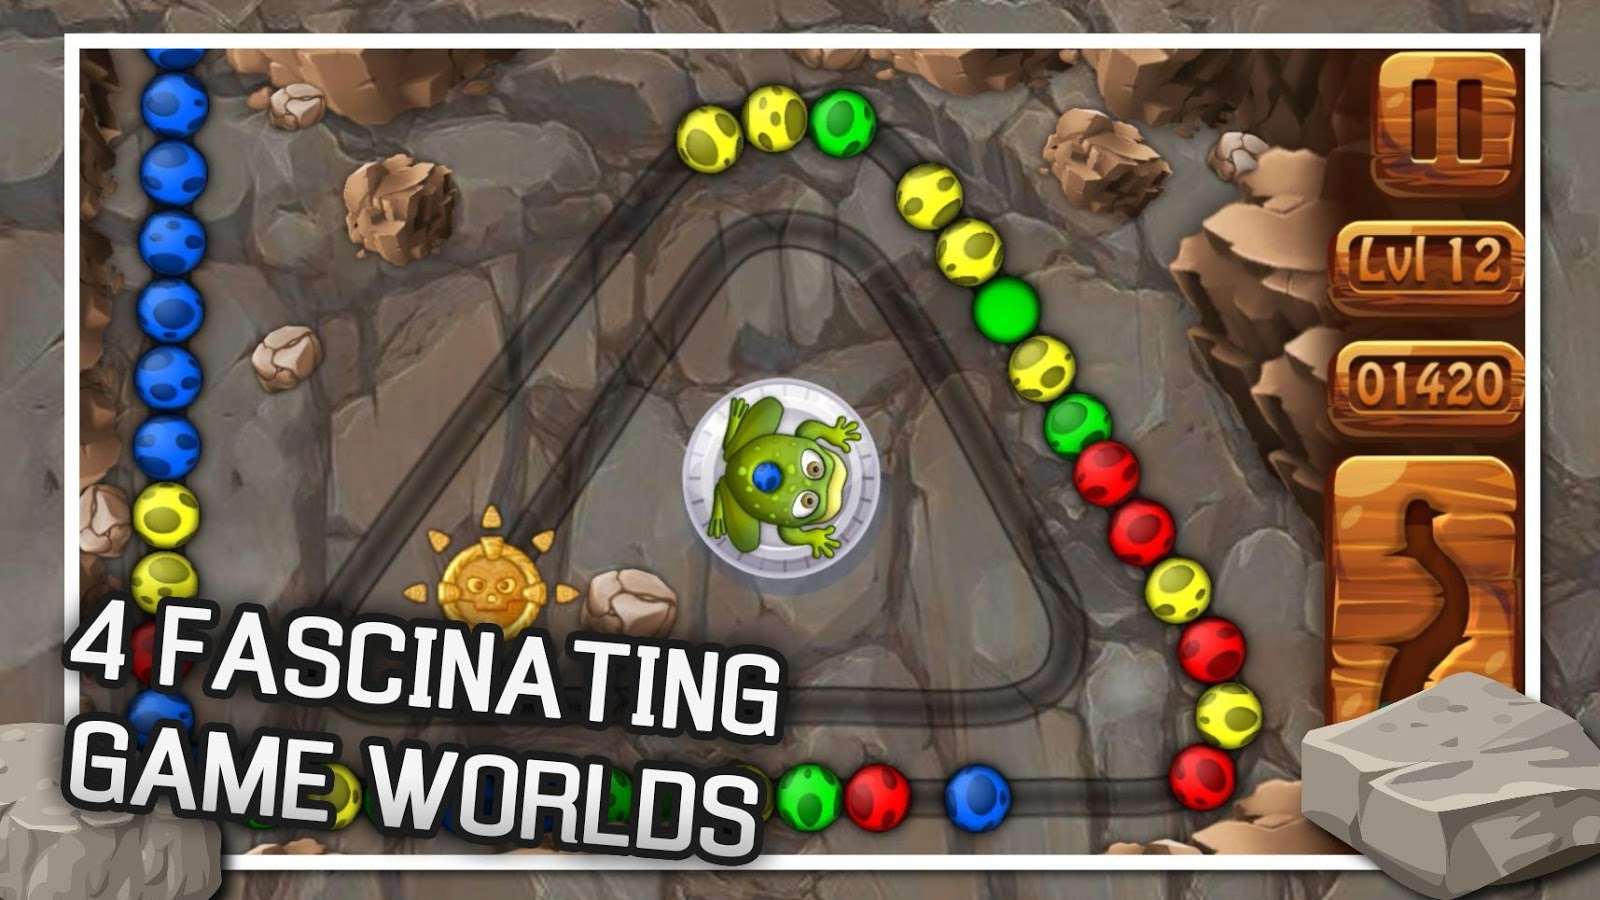 Play Zuma games online for free